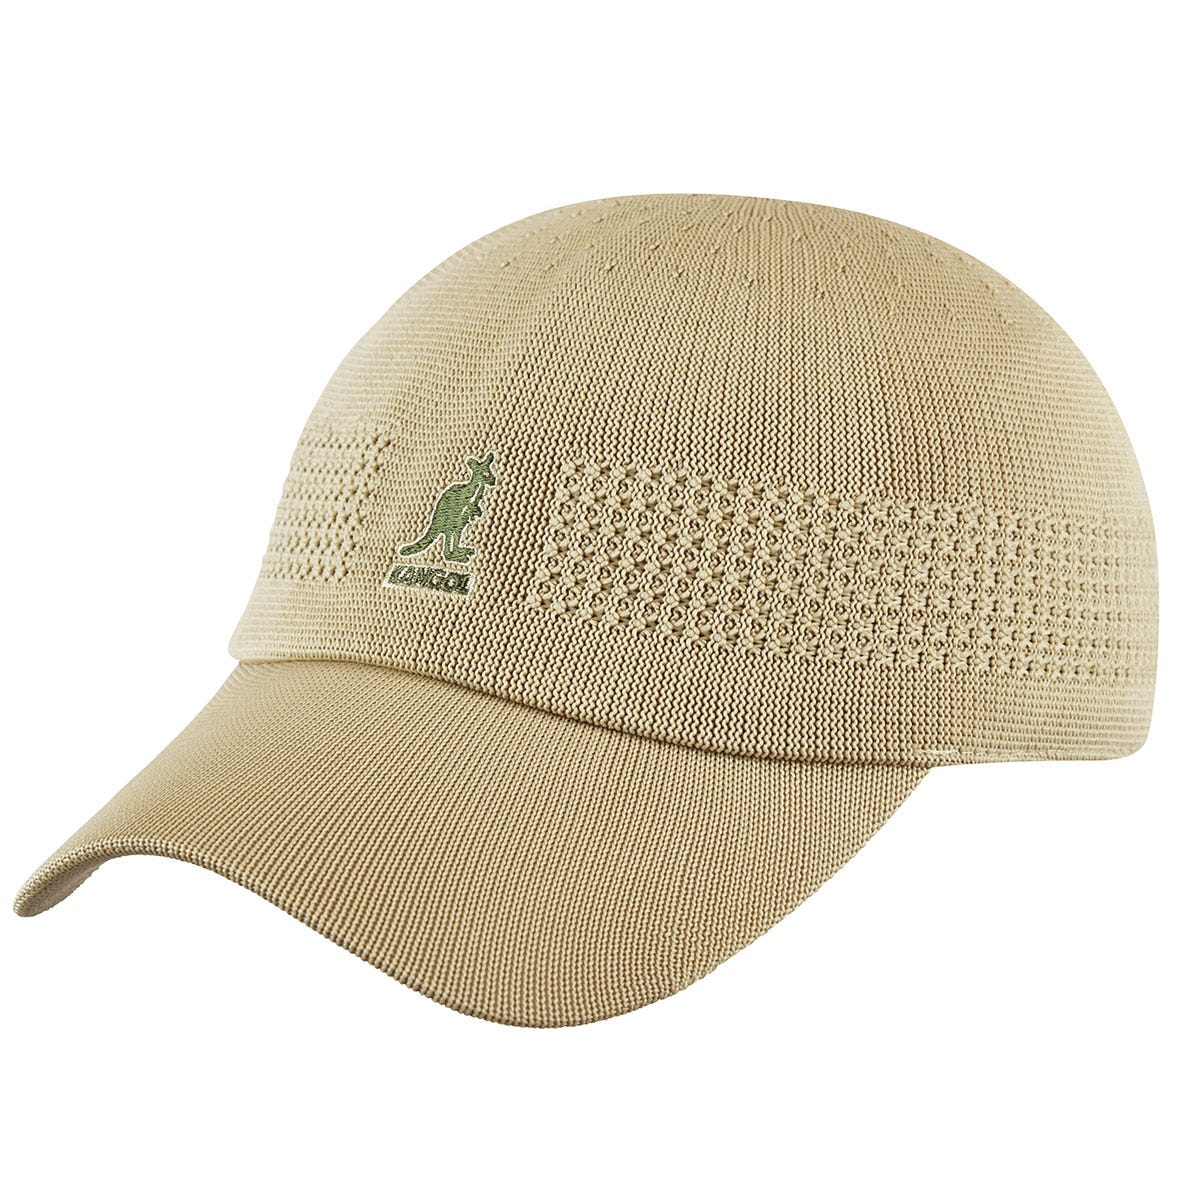 Tropic Ventair Spacecap Baseball Cap - Dapperfam.com